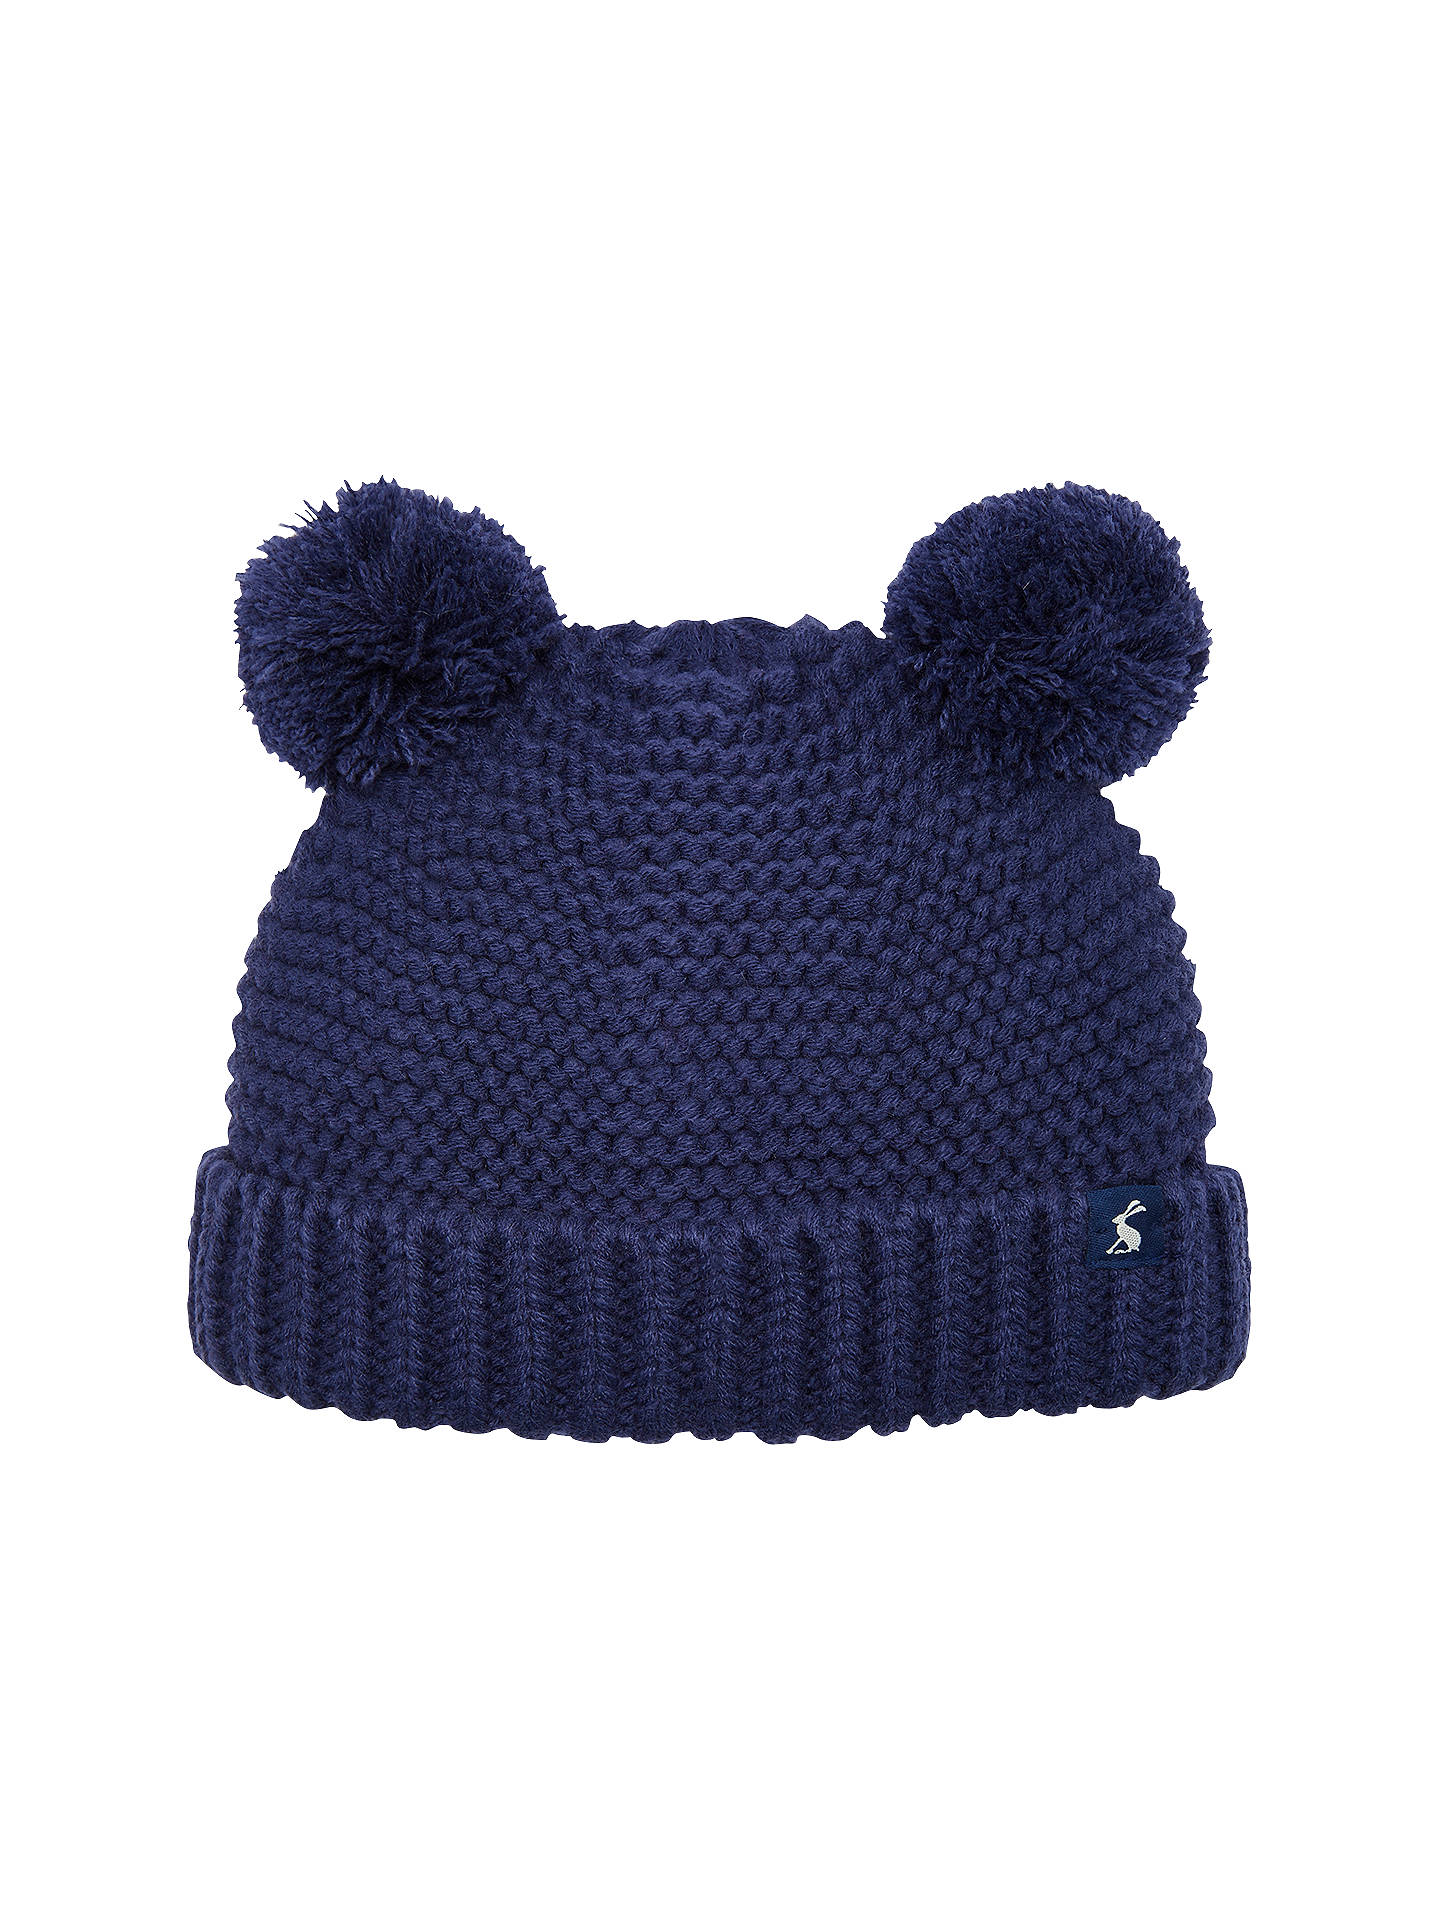 Baby Joule Pom Pom Knit Hat at John Lewis   Partners 02ca87a1c875